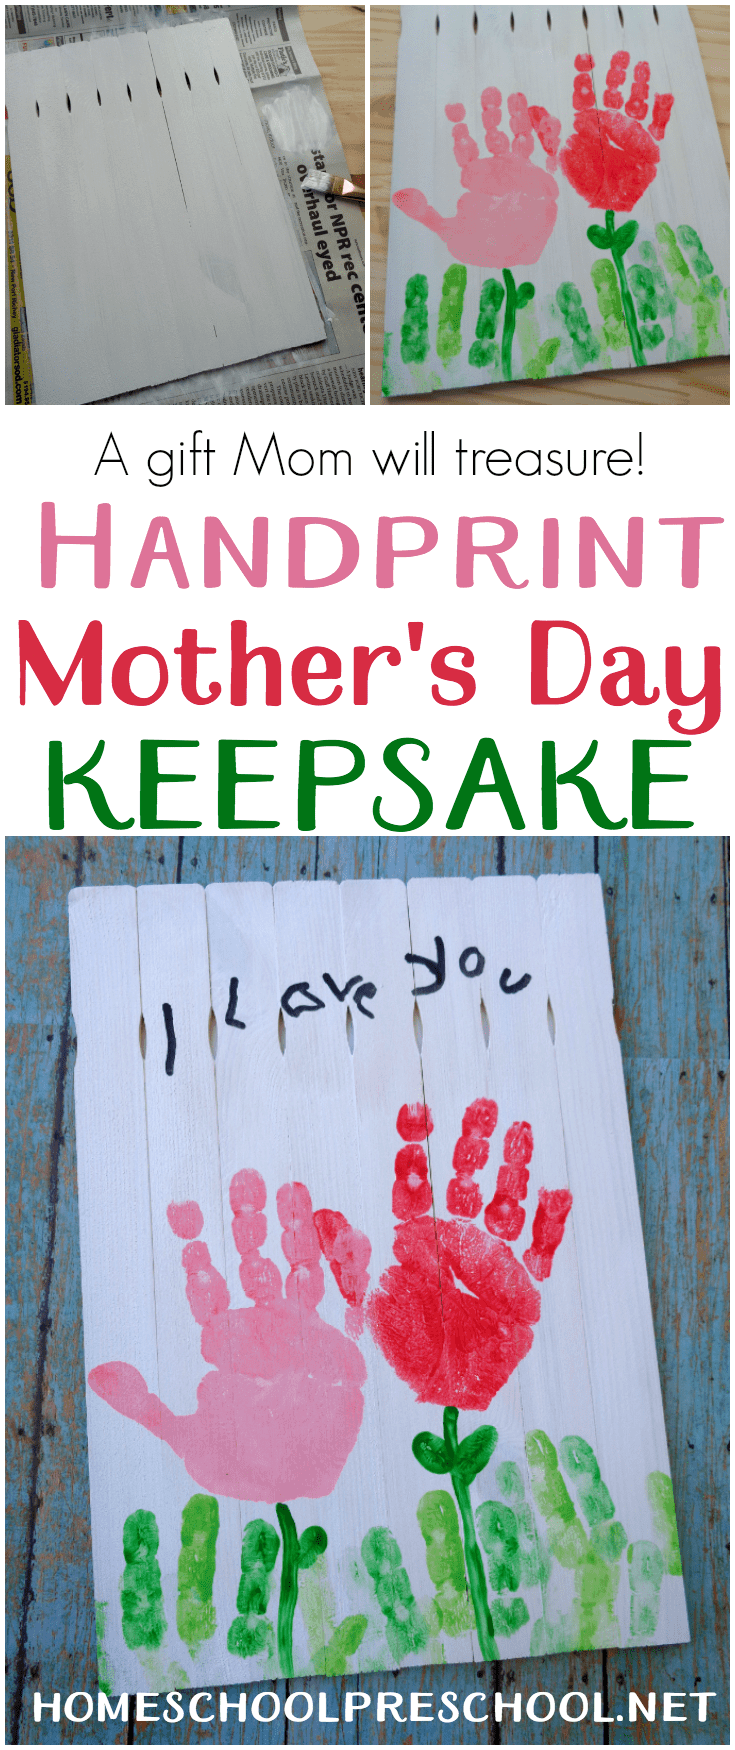 Young kids love making gifts for others. Here's a Mother's Day craft that is sure to become a treasured keepsake for many years to come.